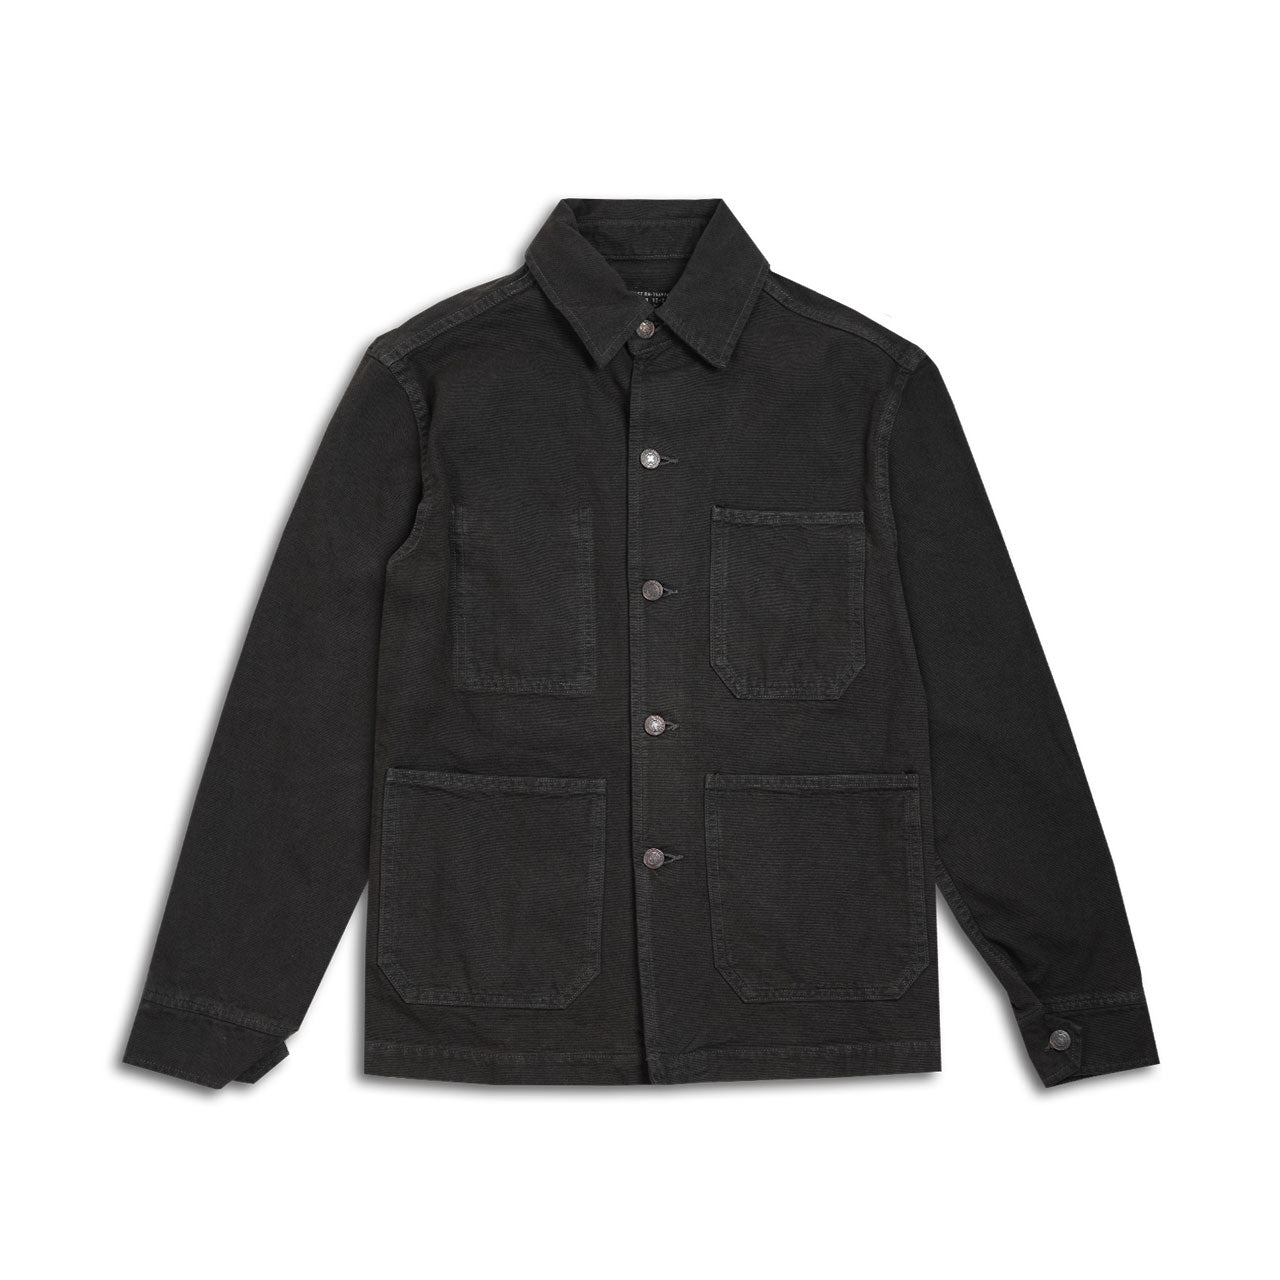 Imogene+Willie Jack Overdyed Slate Jacket